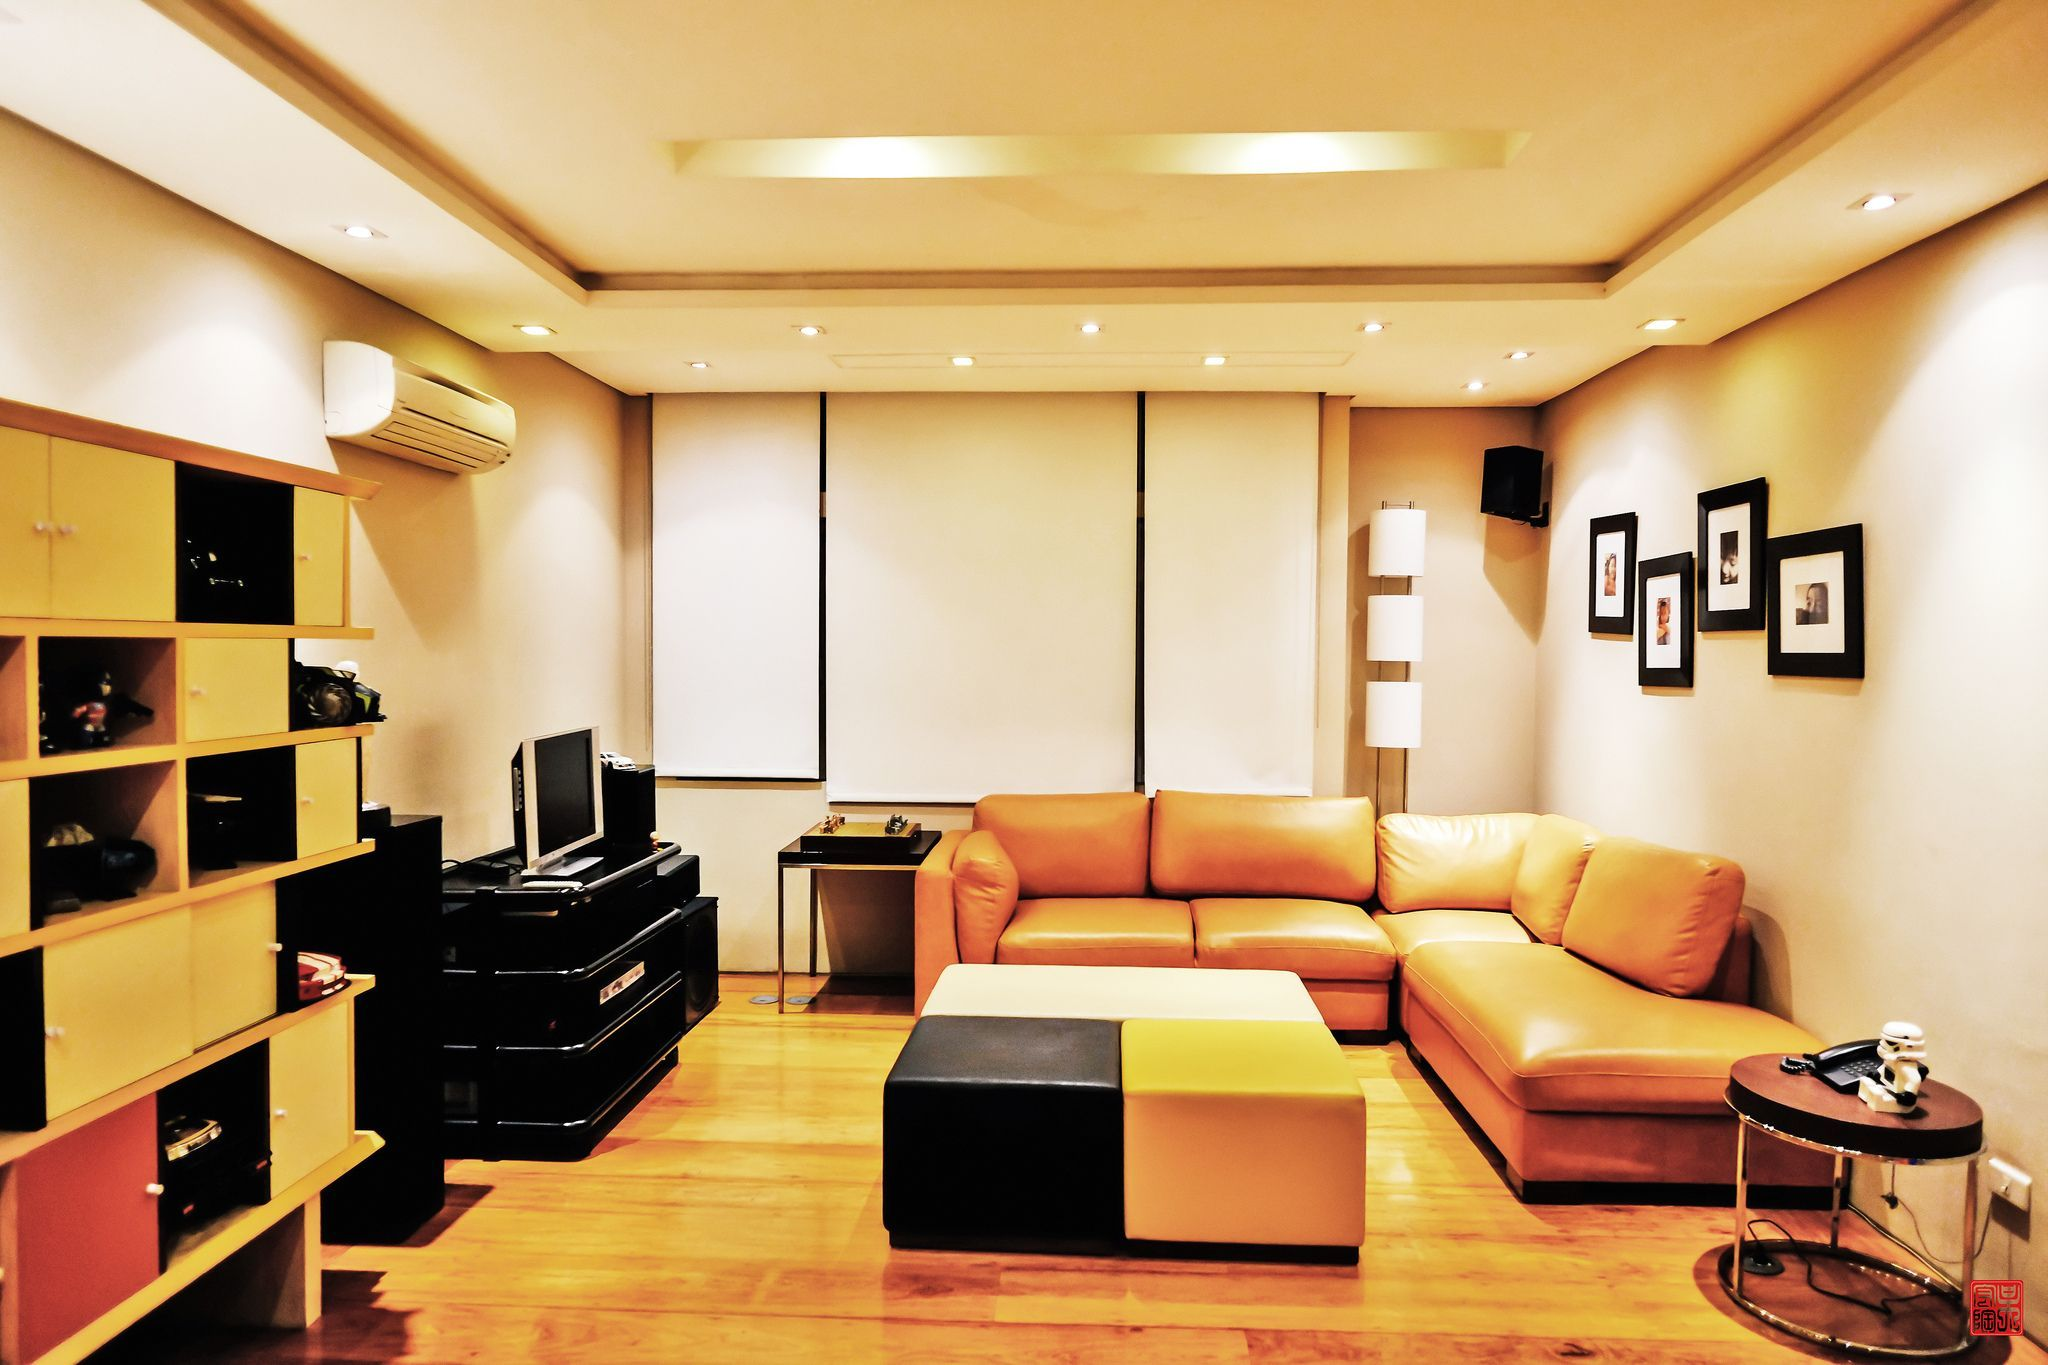 32 Recreation Room Ideas and Designs to Relieve Stress | Room ideas ...